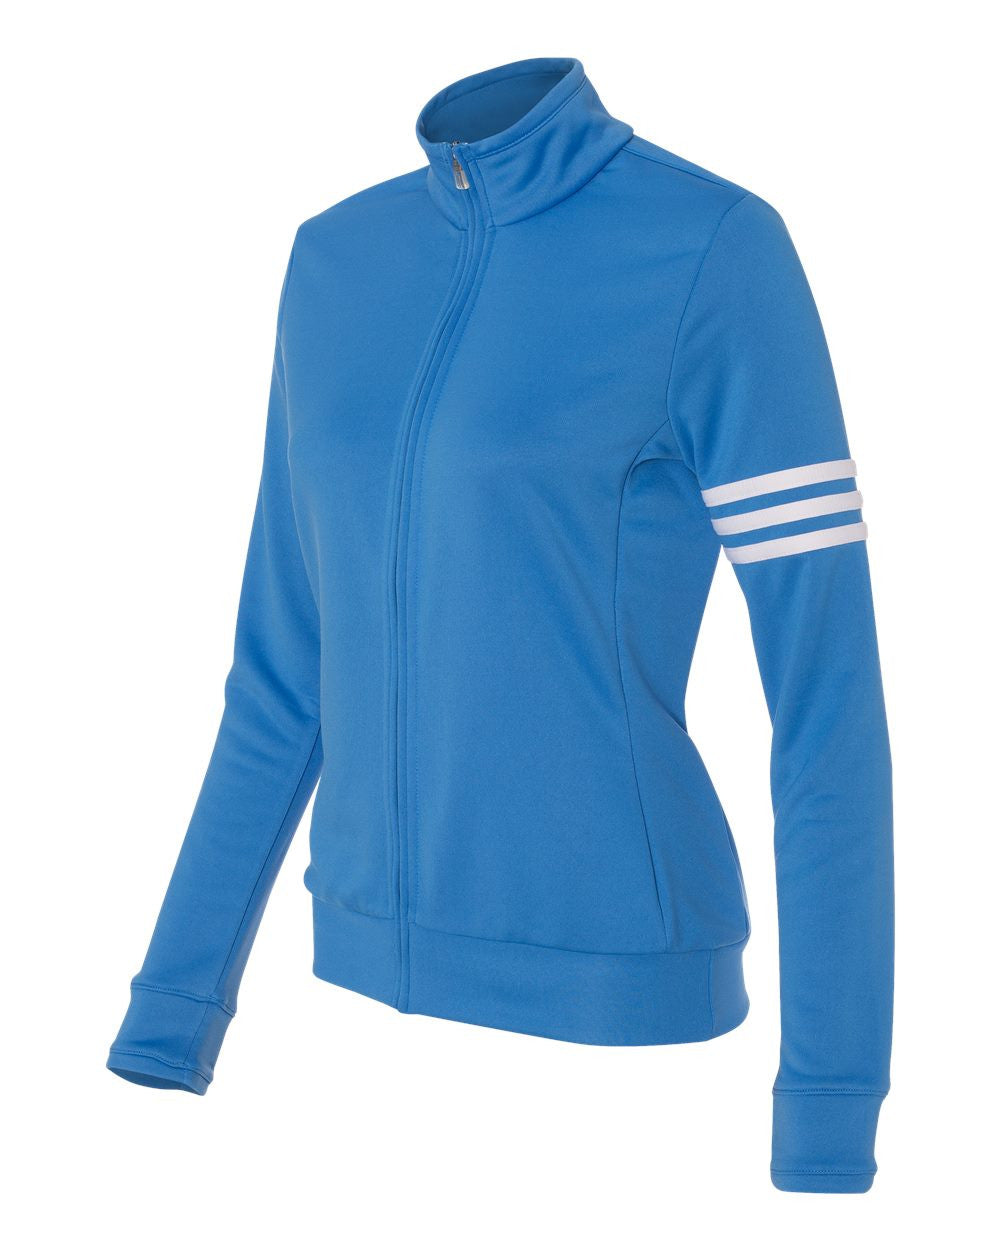 Women's ClimaLite Full-Zip Jacket by Adidas - Discountedrack.com